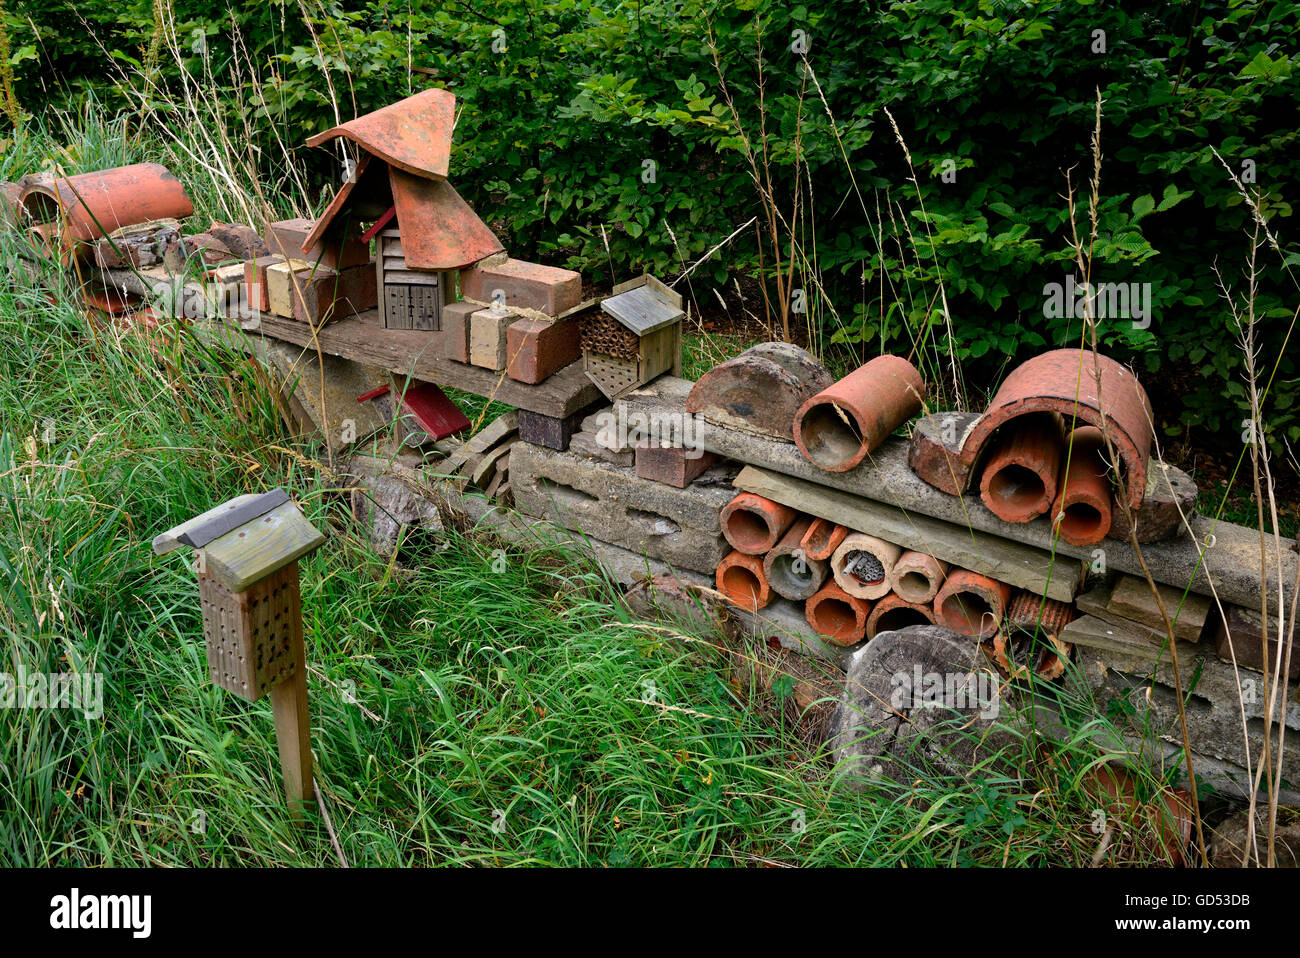 Nesting aid for insects - Stock Image